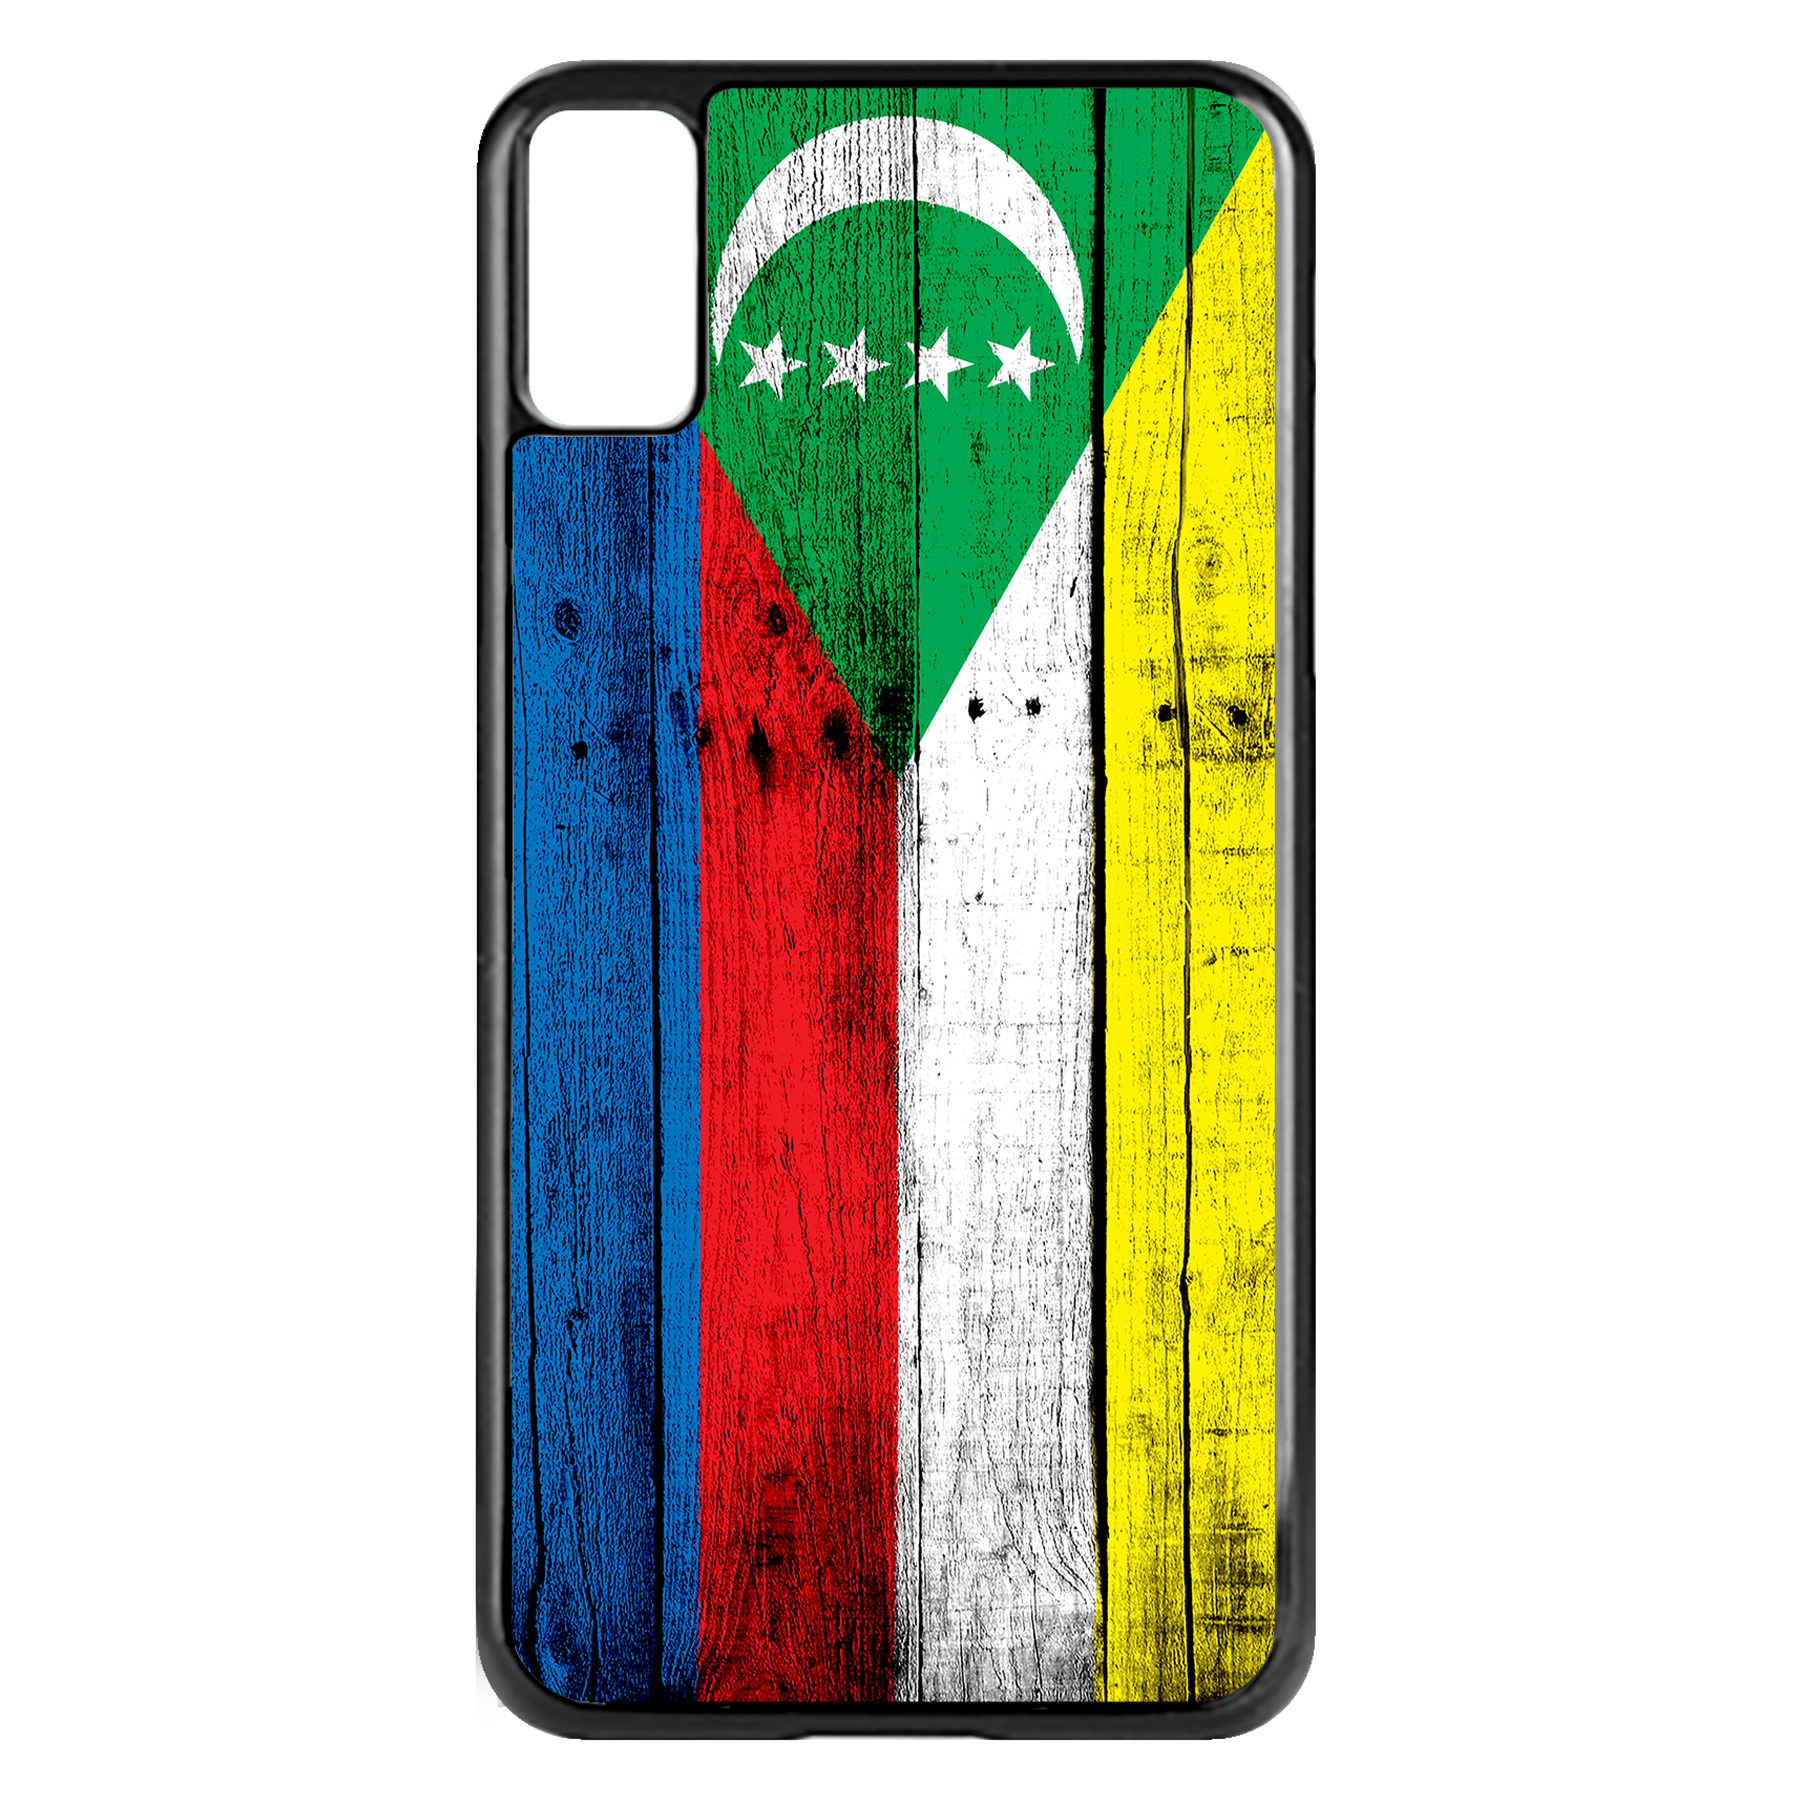 Apple-iPhone-Case-with-Flag-of-Comoros-Comorian-Many-Design-Options thumbnail 4